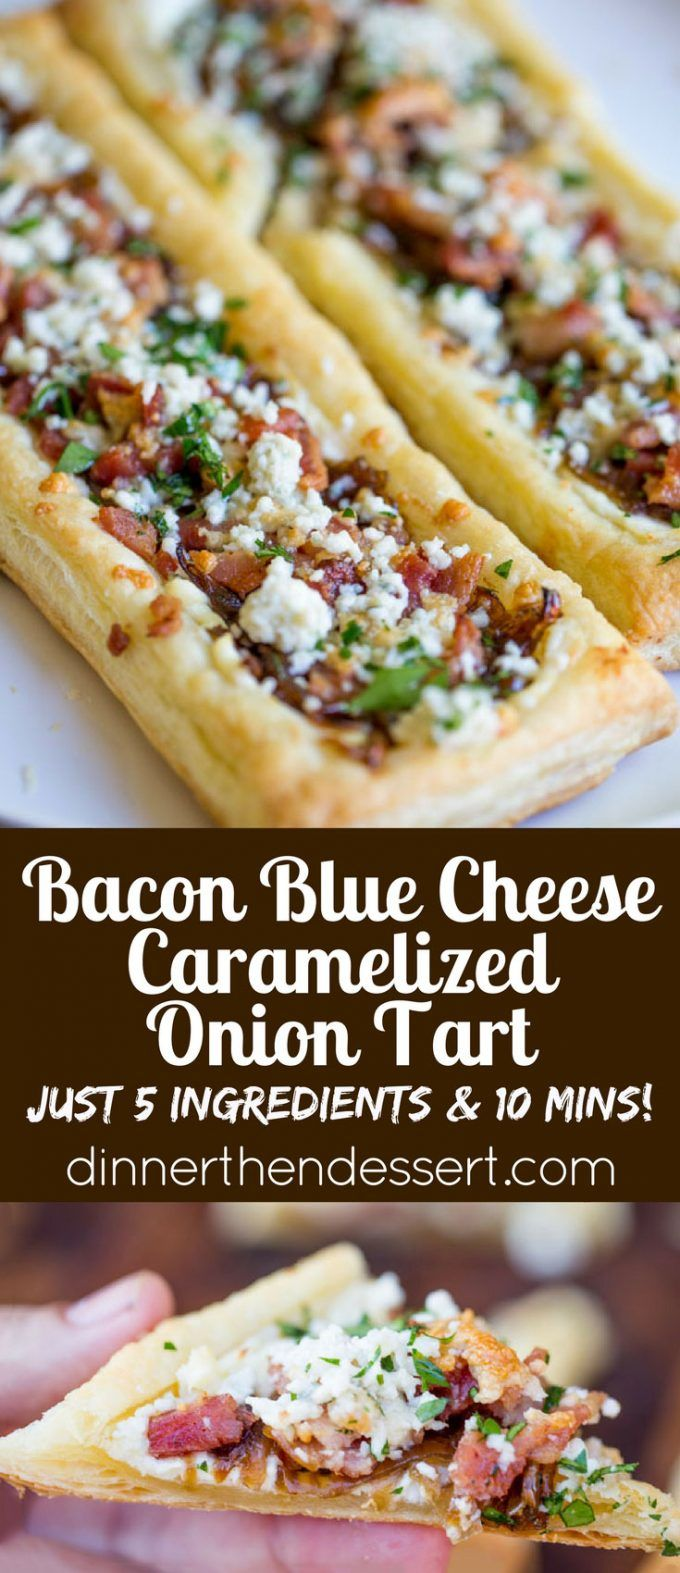 Bacon Blue Cheese Caramelized Onion Tart with just five ingredients total, it is the perfect easy appetizer for a party that can be prepped and frozen ahead of time so you can just bake right before your party!  TisTheSeasonsPromo  AD